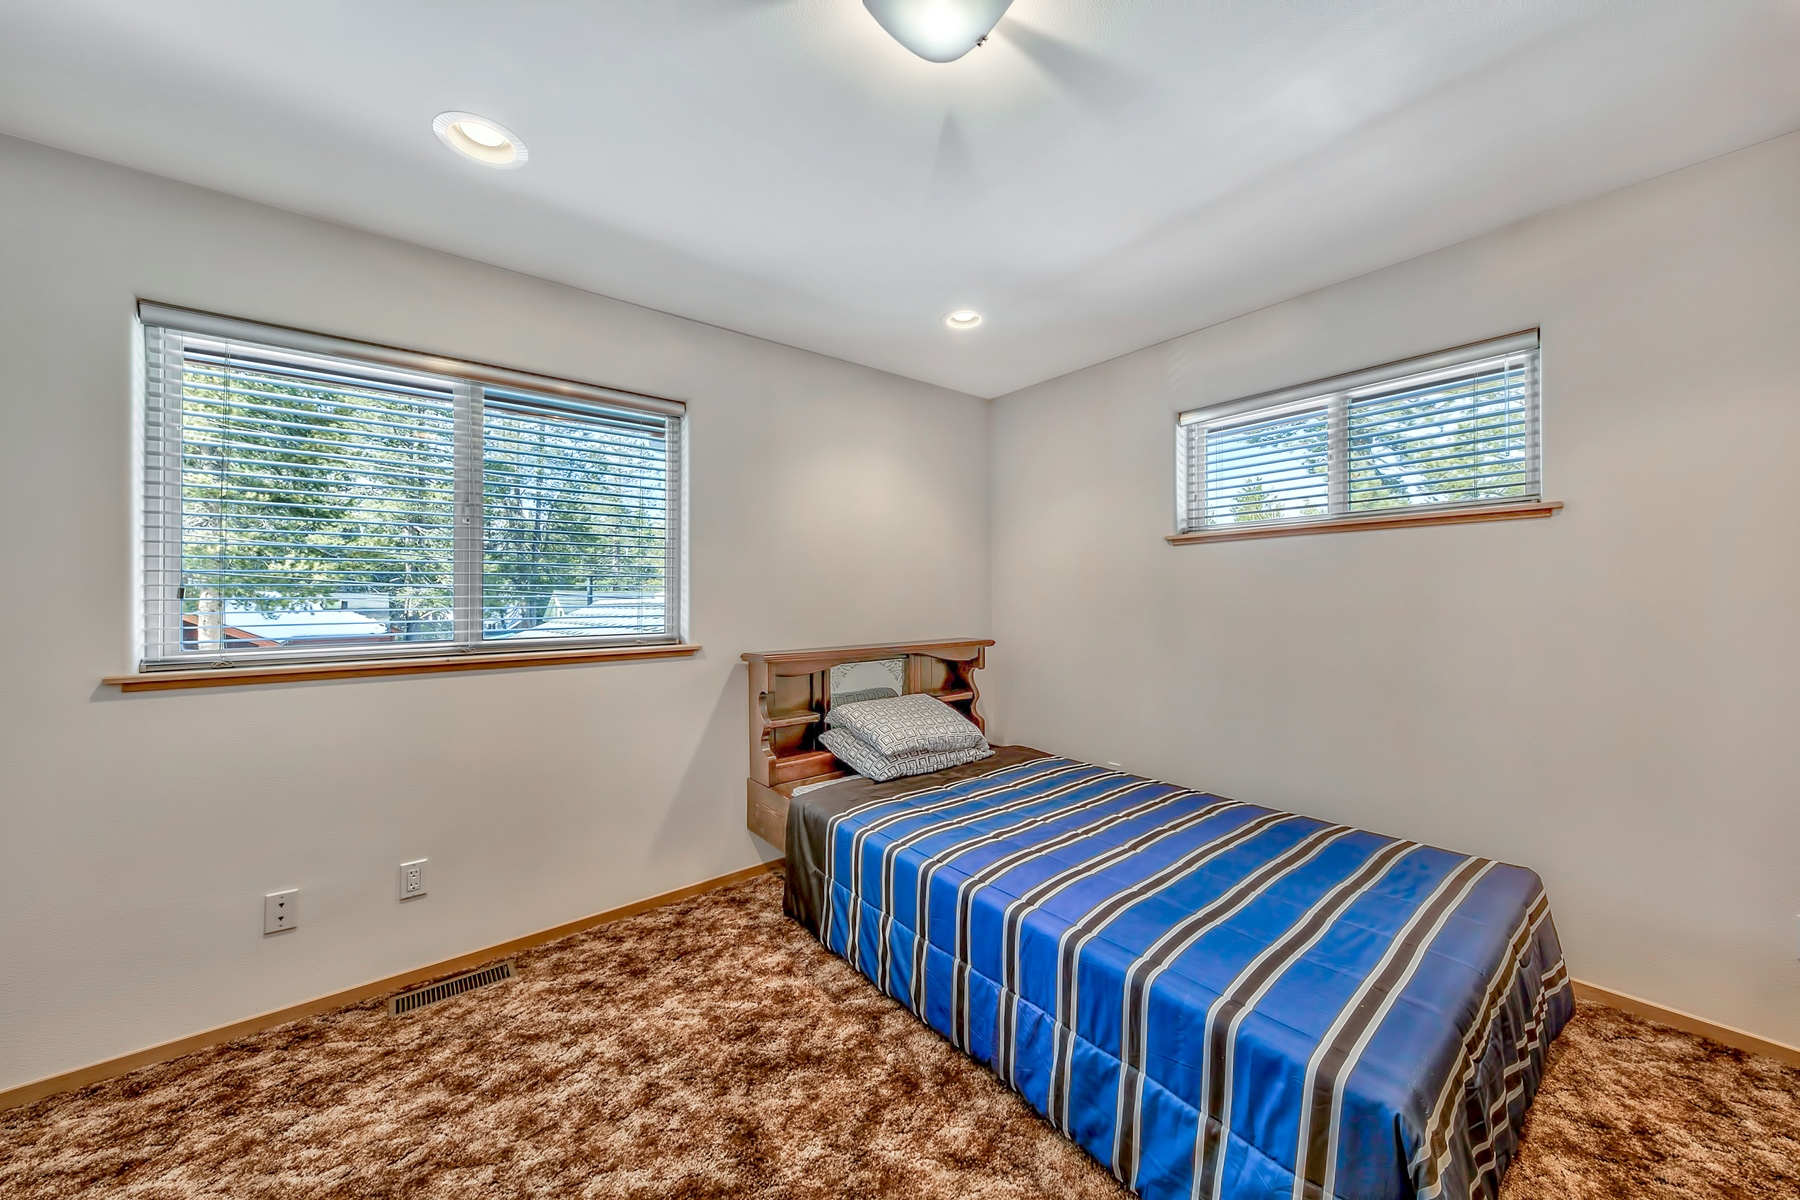 Additional photo for property listing at 1763 Arrowhead Ave, South Lake Tahoe, Ca 96150 1763 Arrowhead Ave. South Lake Tahoe, California 96150 United States